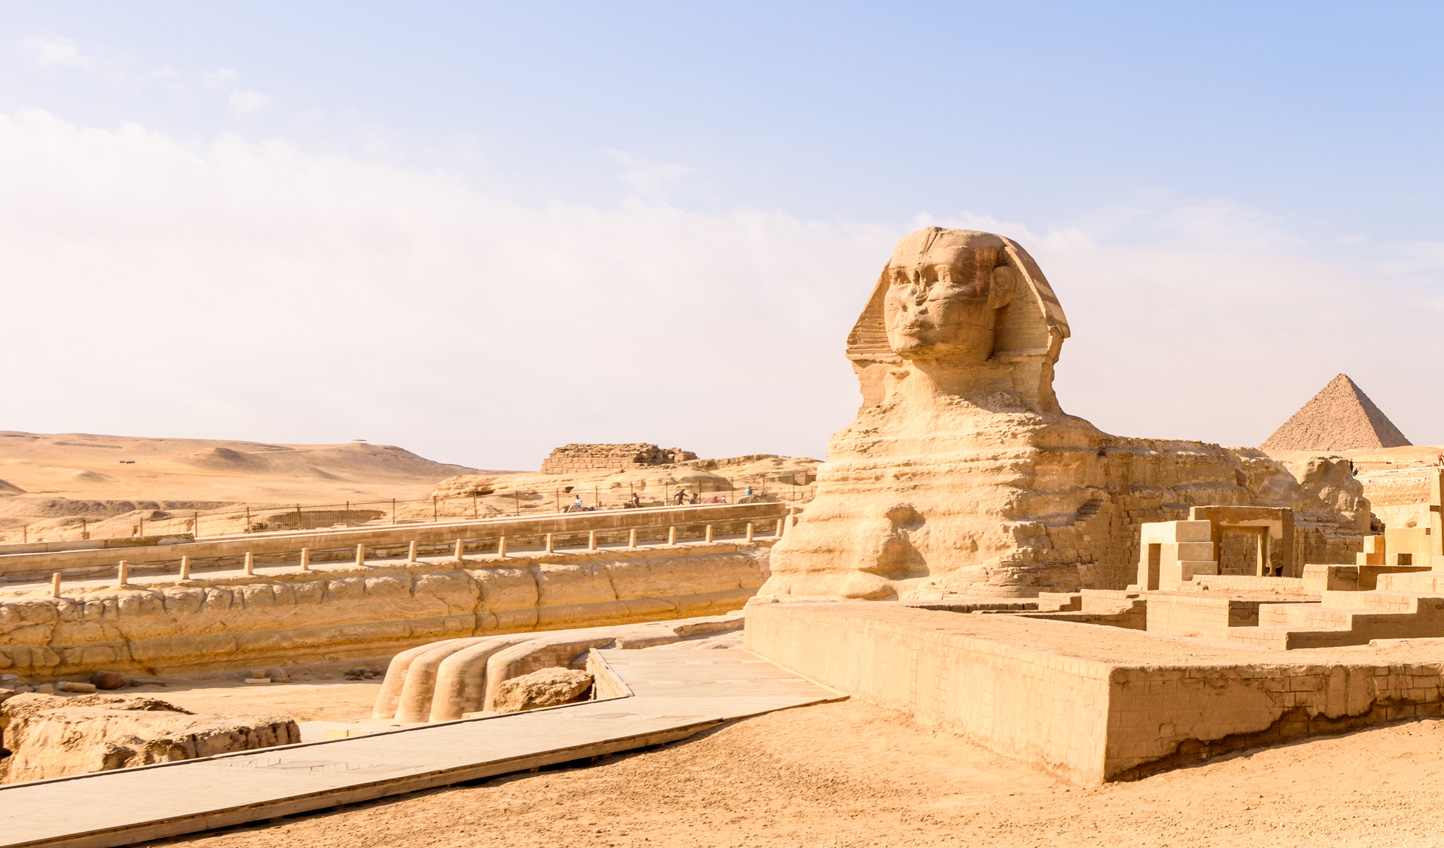 Gain exclusive access to the base of the Sphinx alongside a world-renowned archaeologist